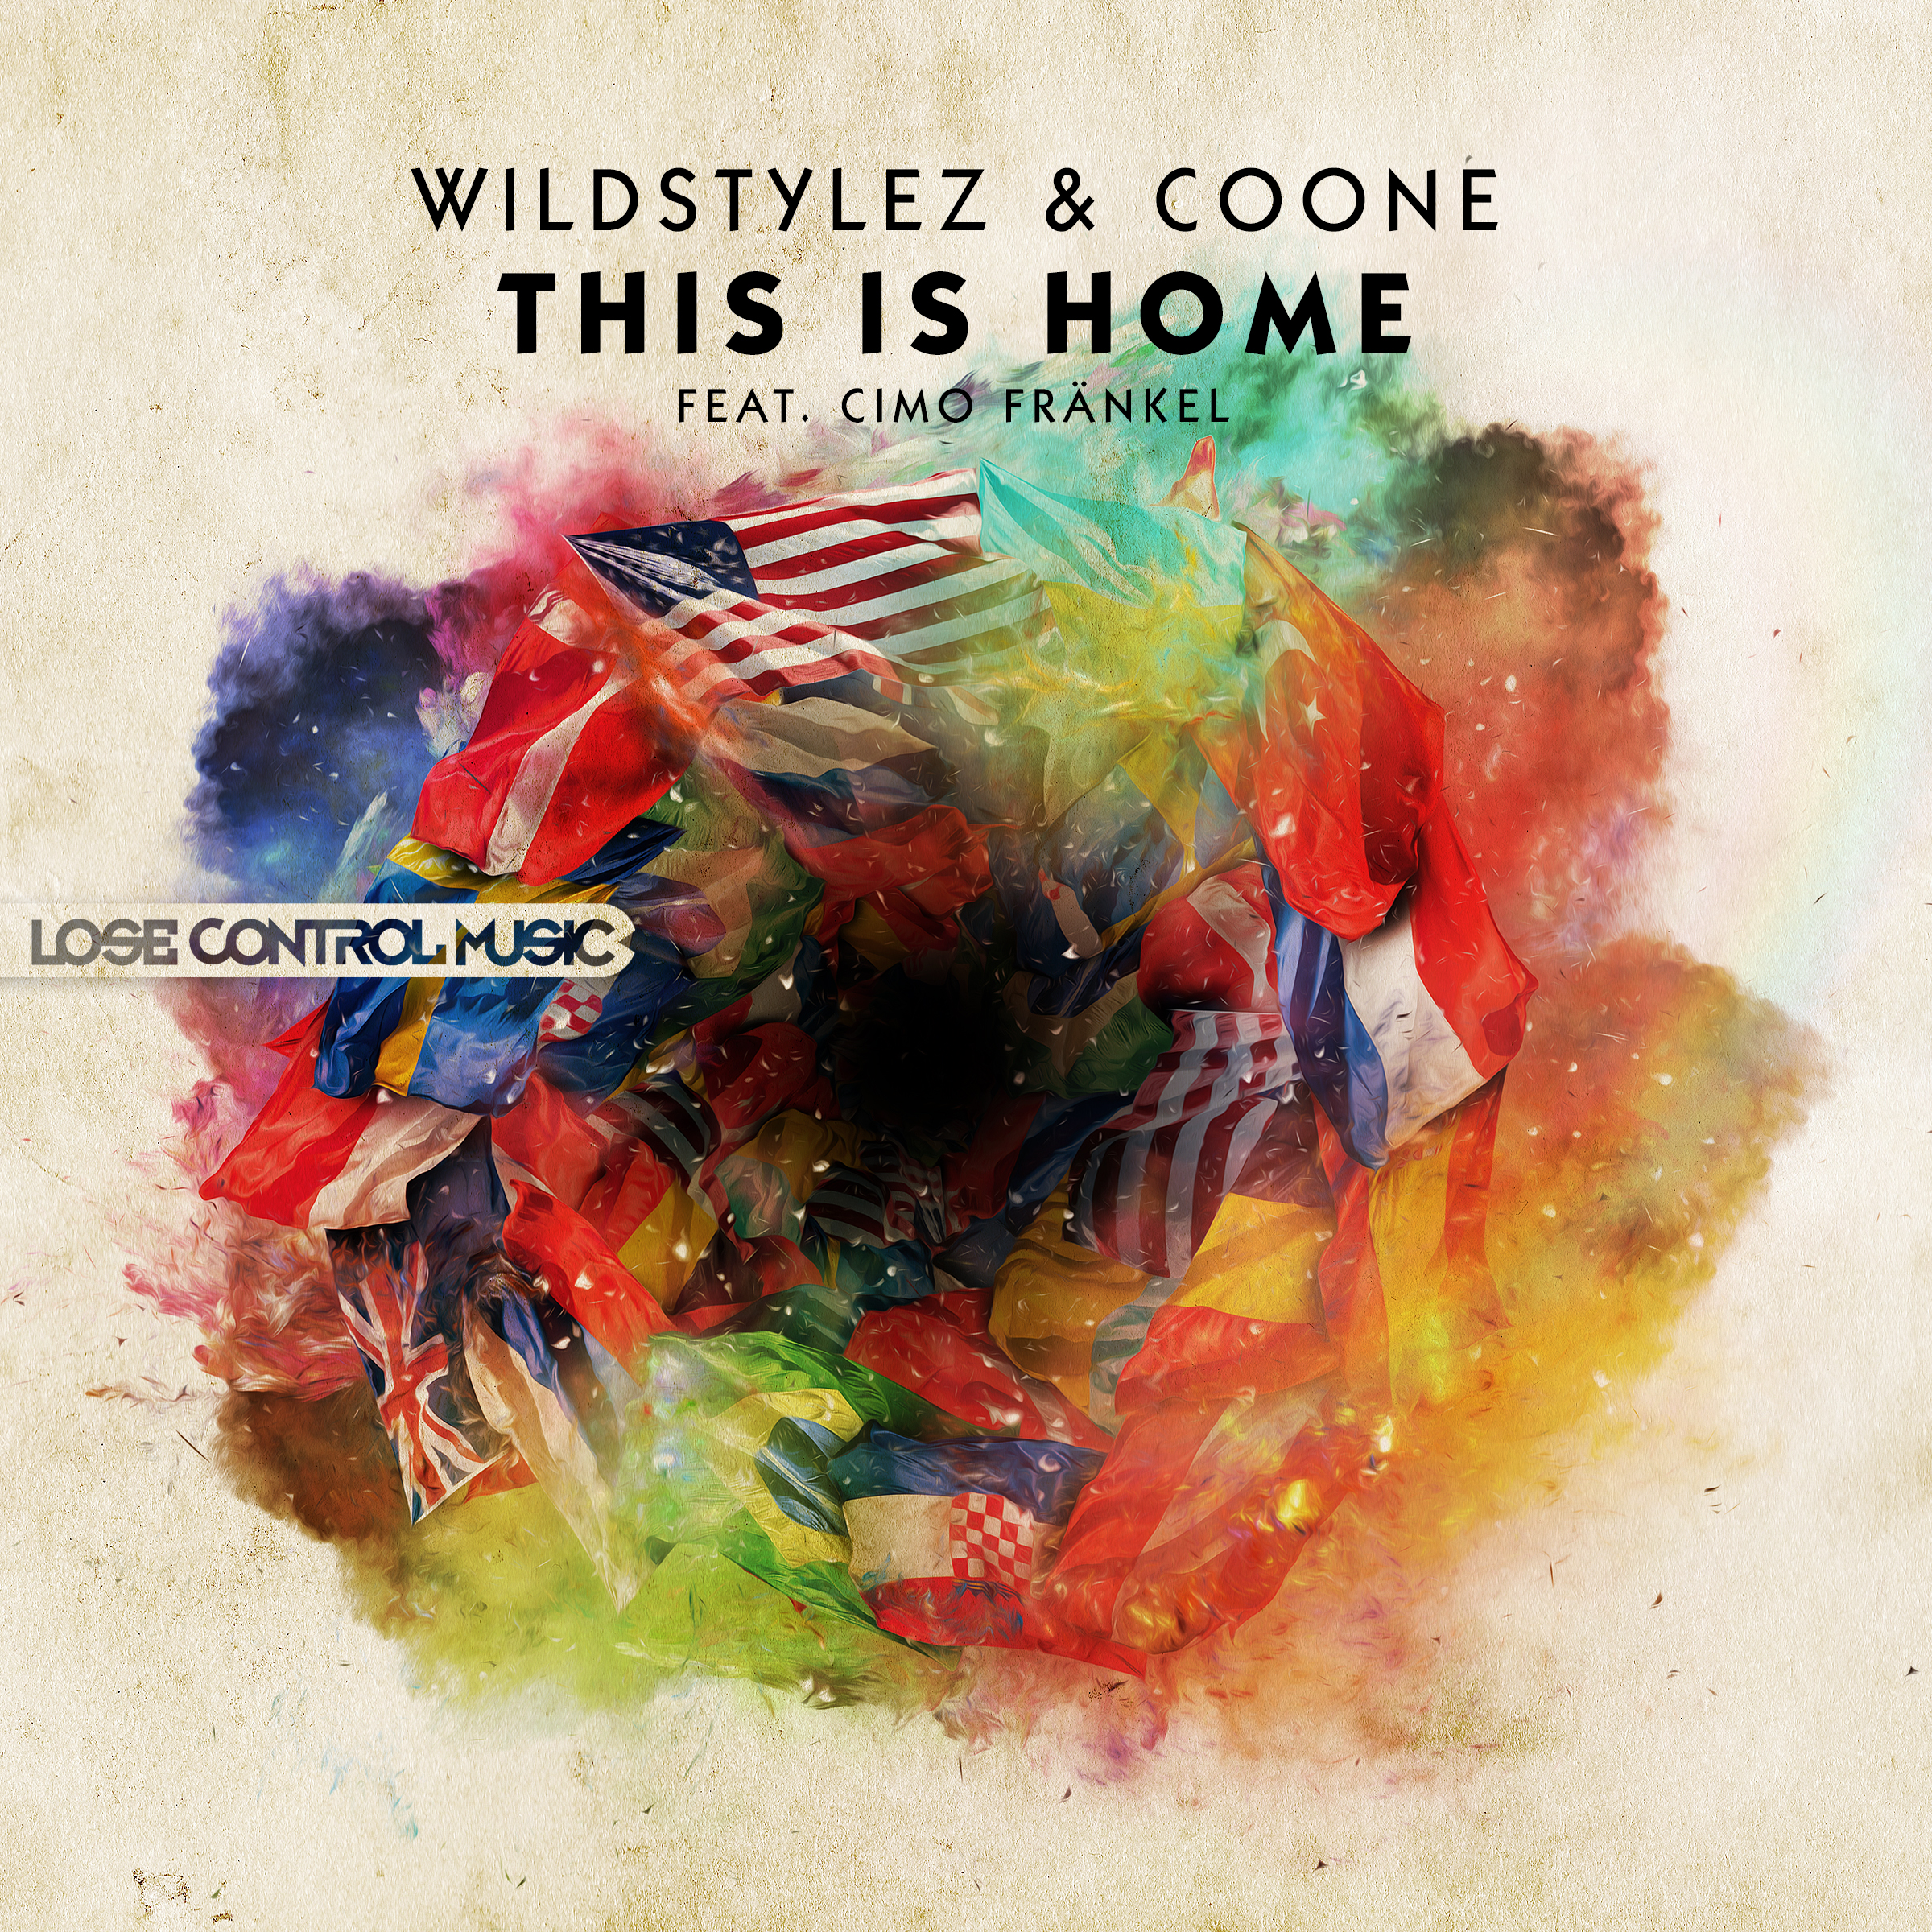 Wildstylez & Coone feat. Cimo Frankel - This Is Home 2400x2400